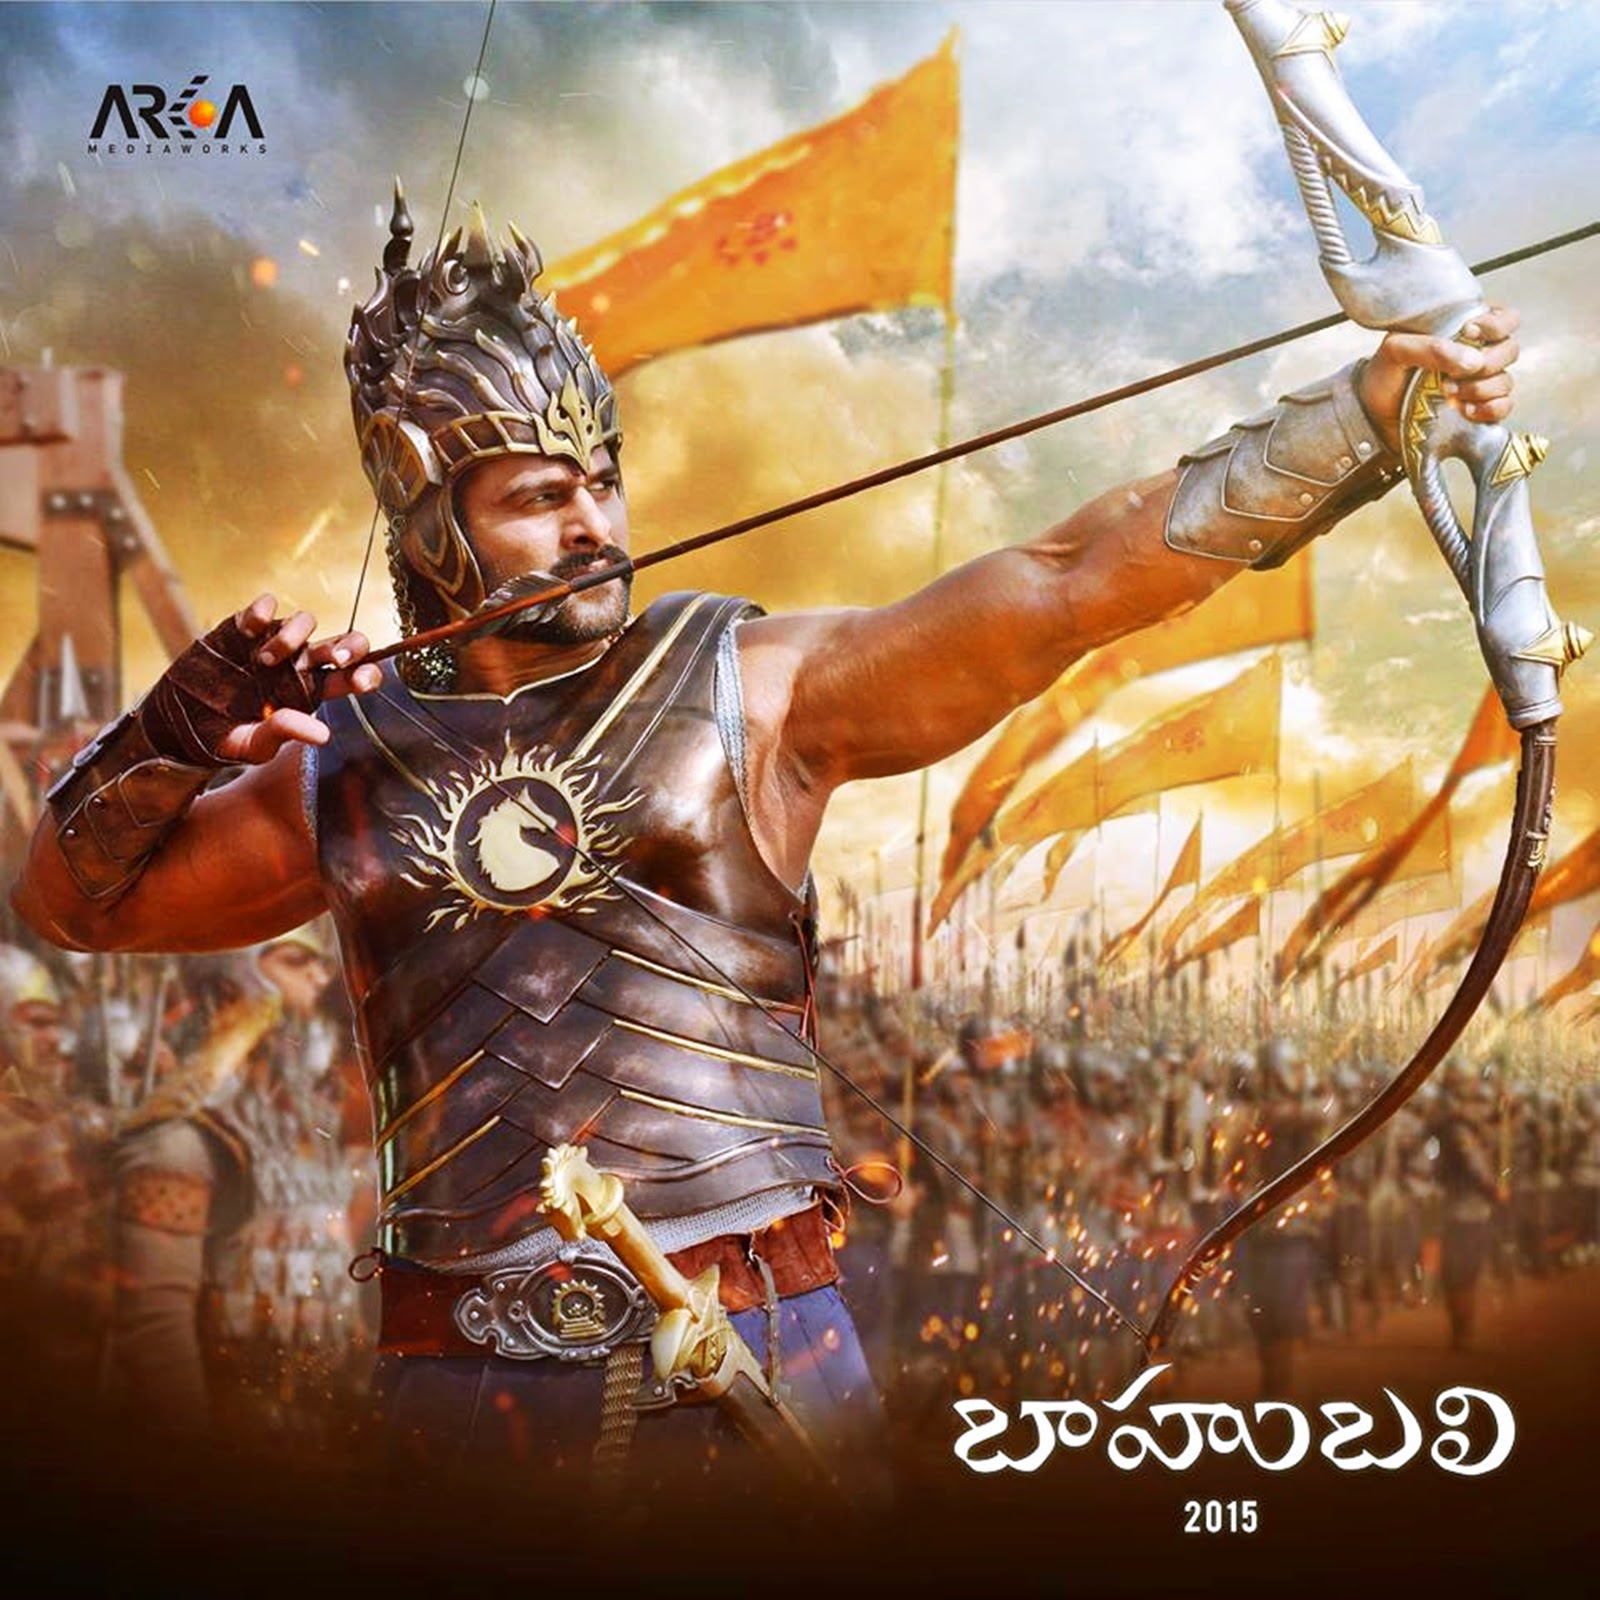 Baahubali Movie wallpapers